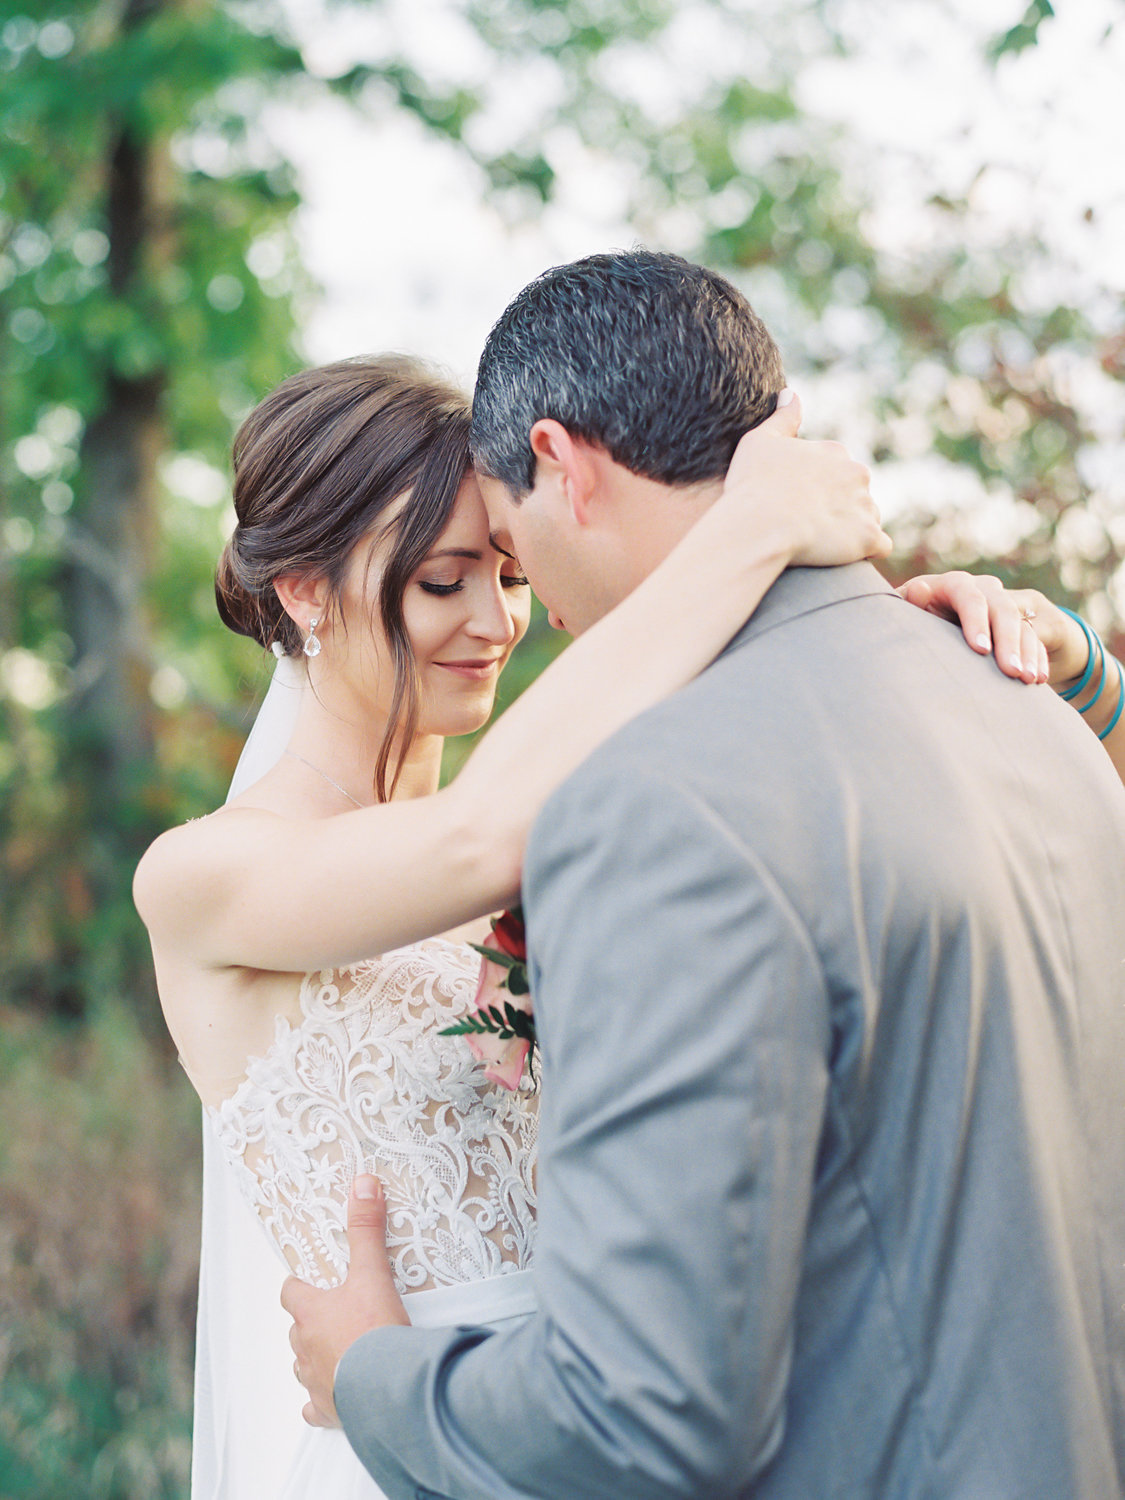 Jacqueline Anne Photography - Ottawa vineyard wedding-20